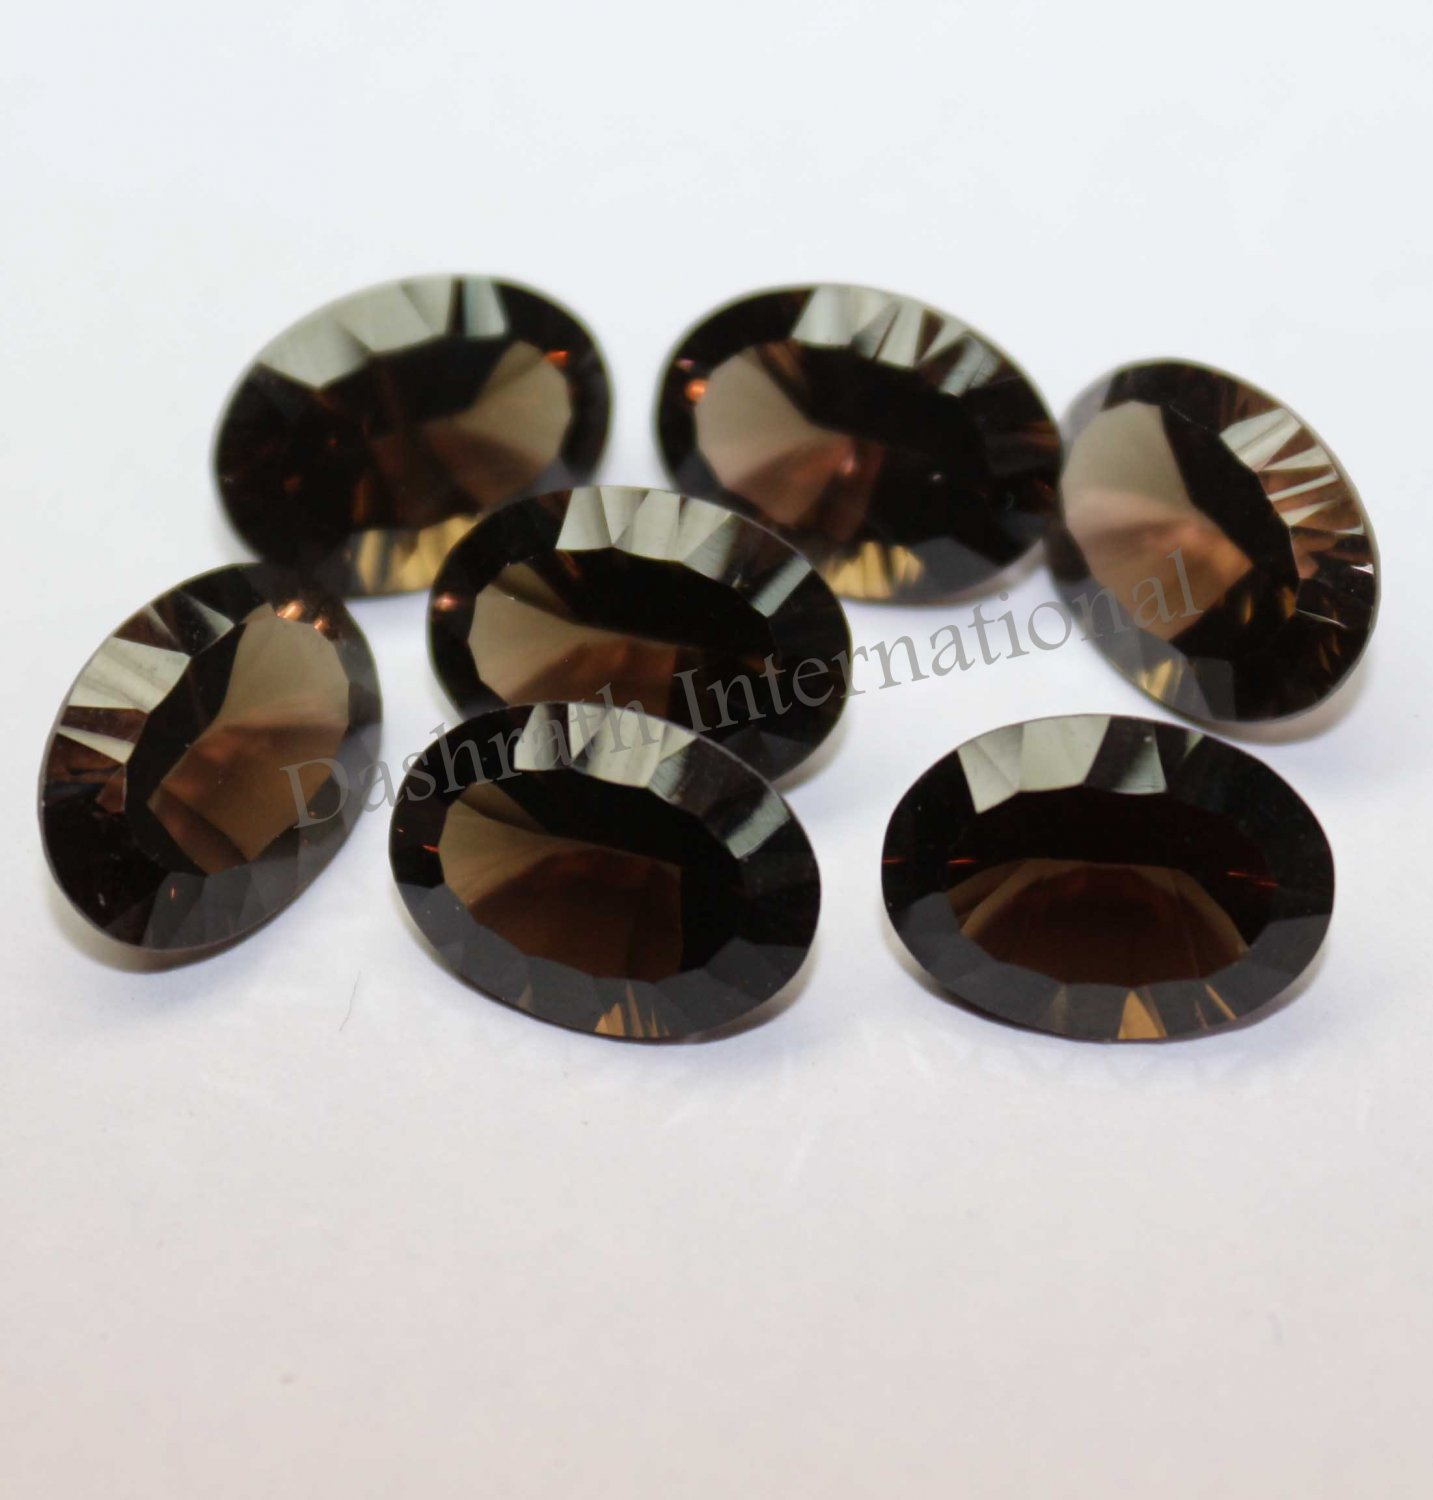 10x14mm Natural Smoky Quartz Concave Cut  Oval  50 Pieces Lot   (SI) Top Quality  Loose Gemstone